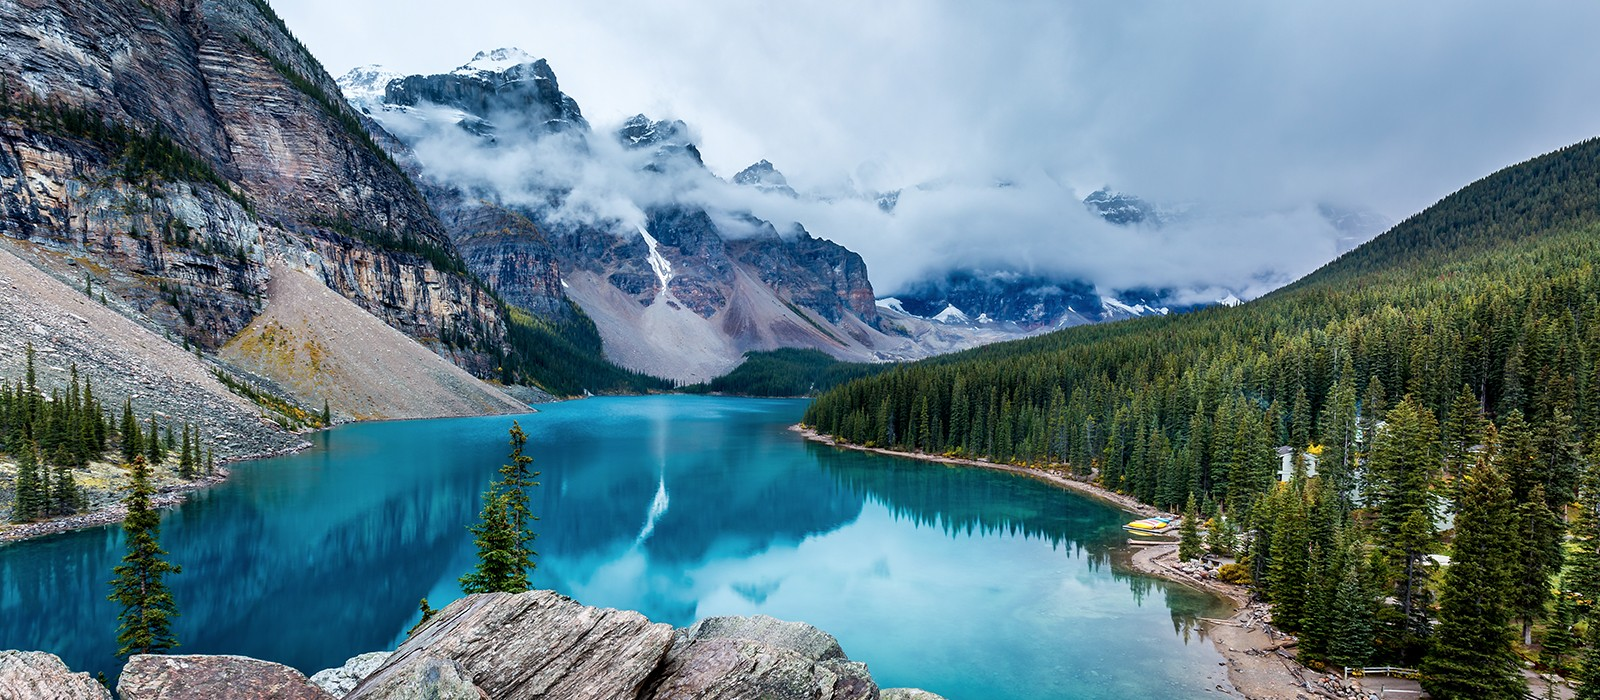 Package Holidays To Banff Canada Lifehacked1st Com